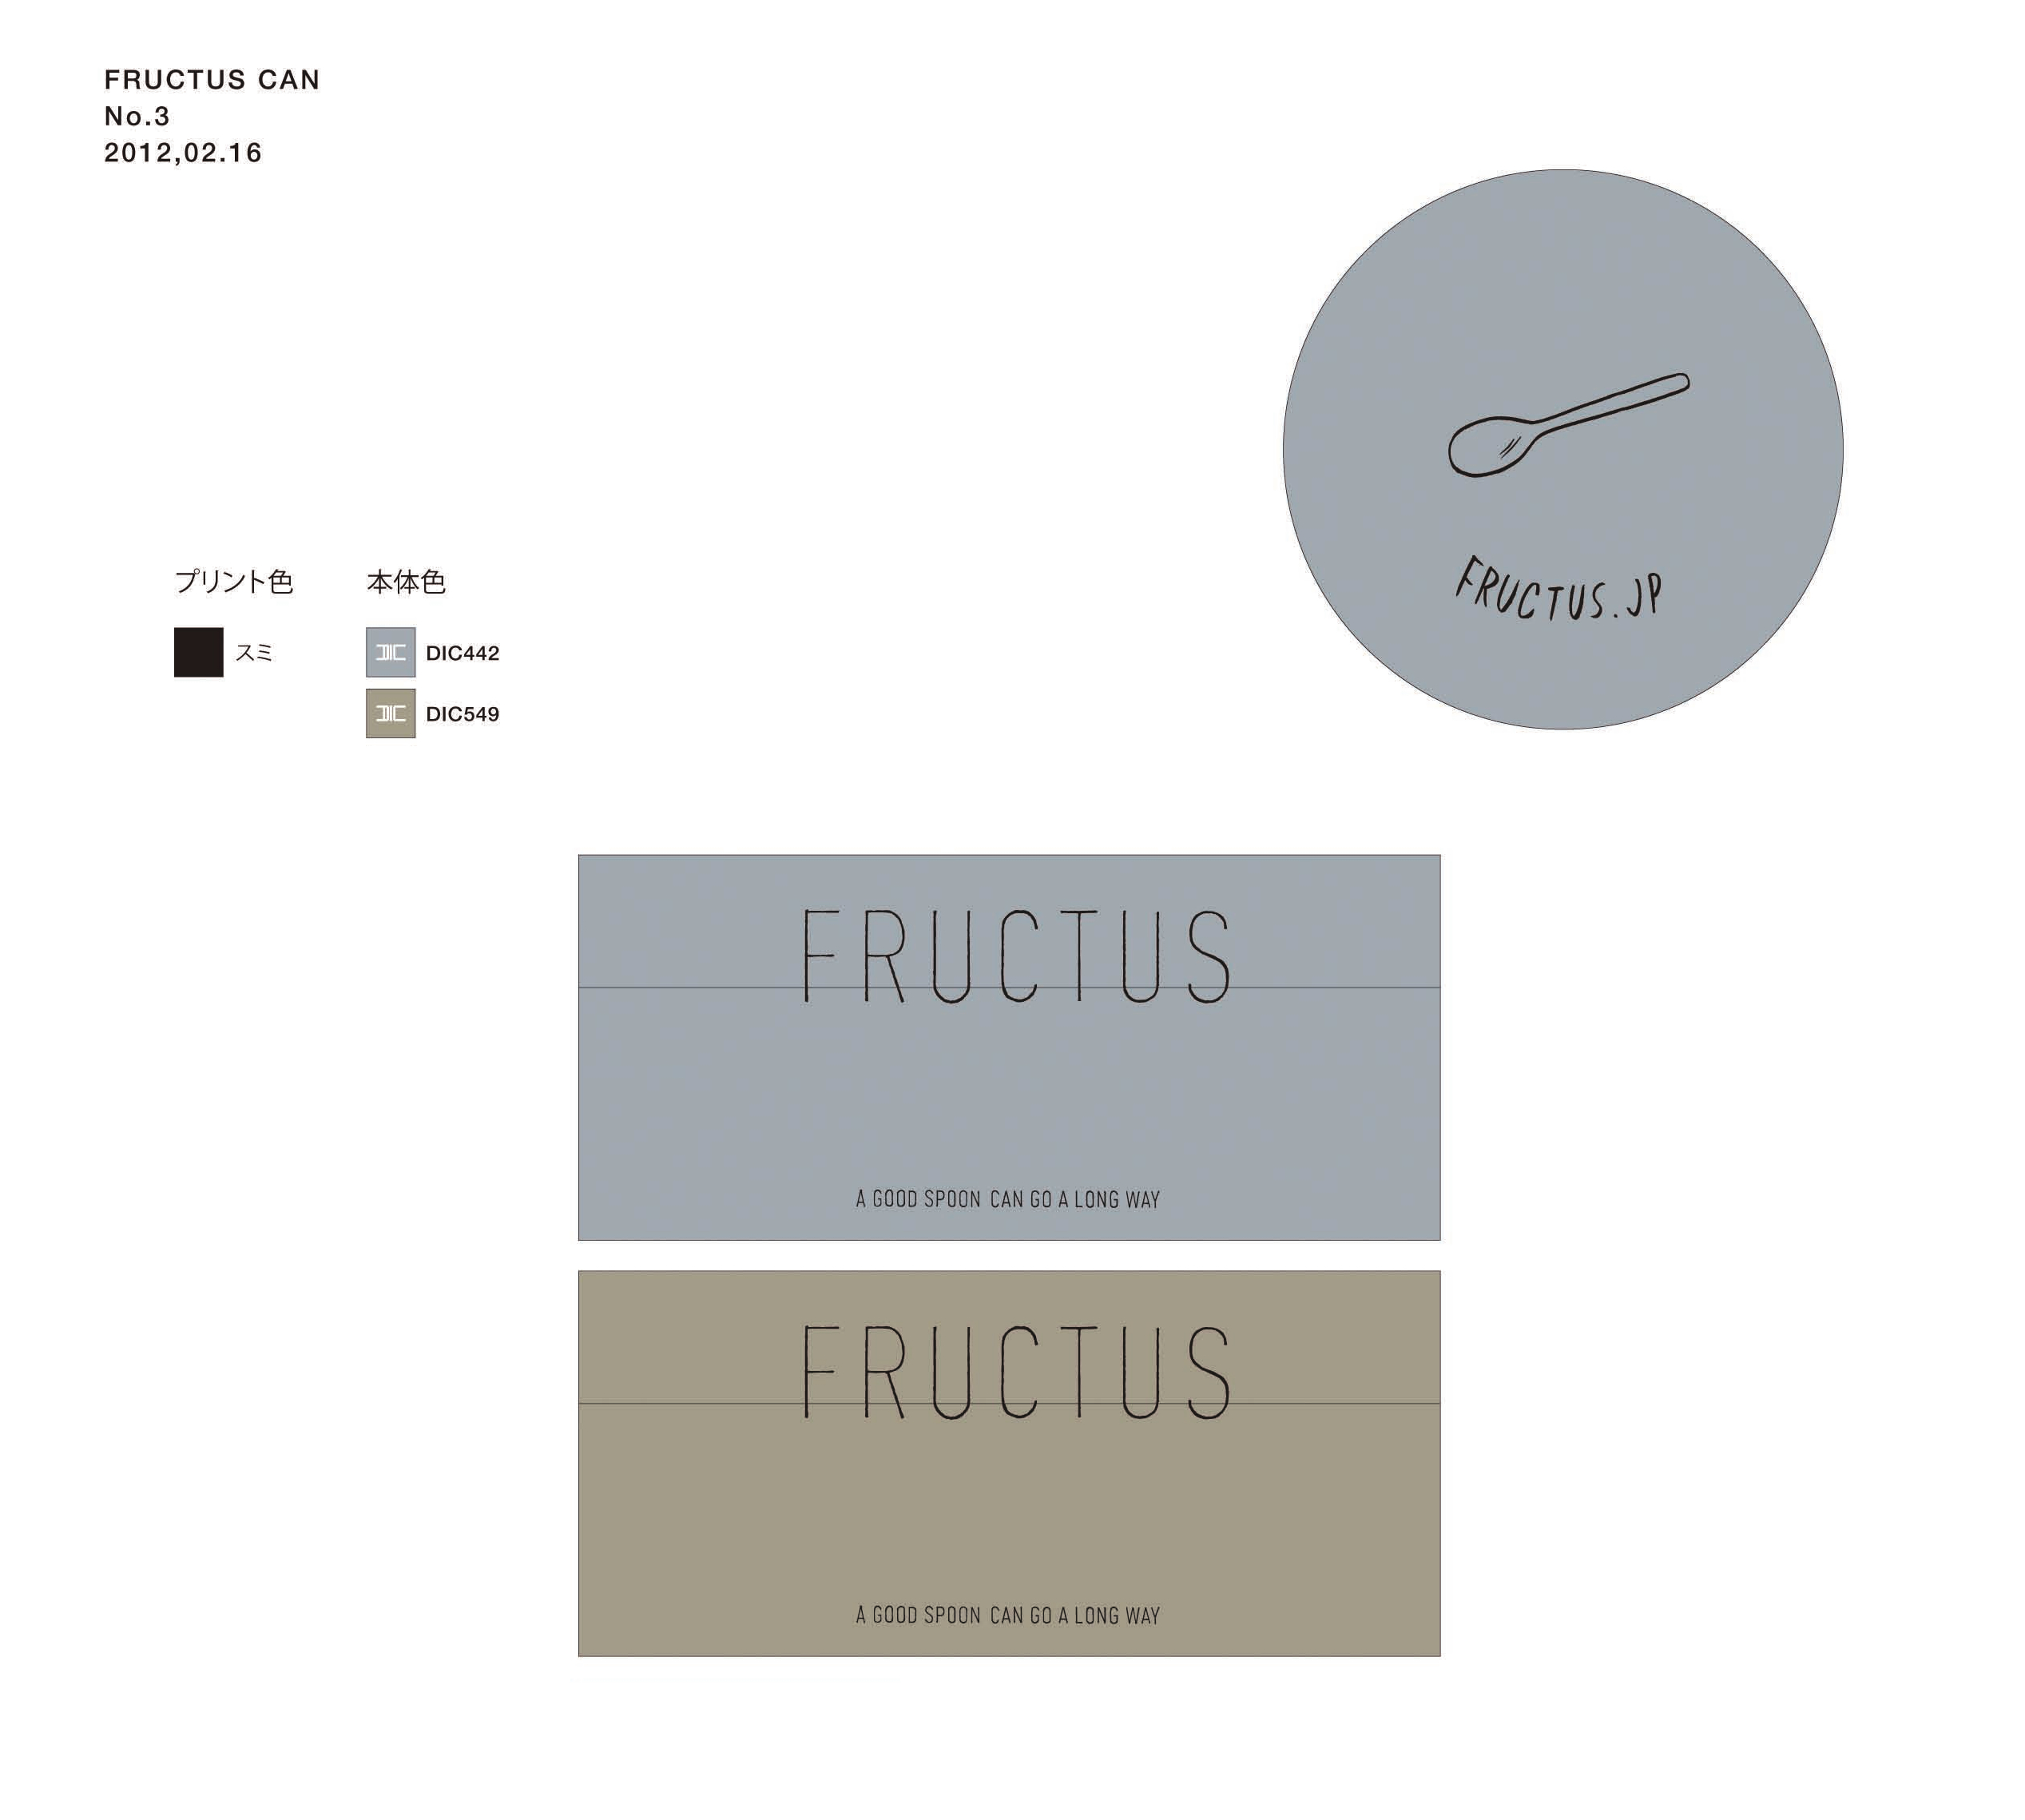 A4_fructus can 3-2